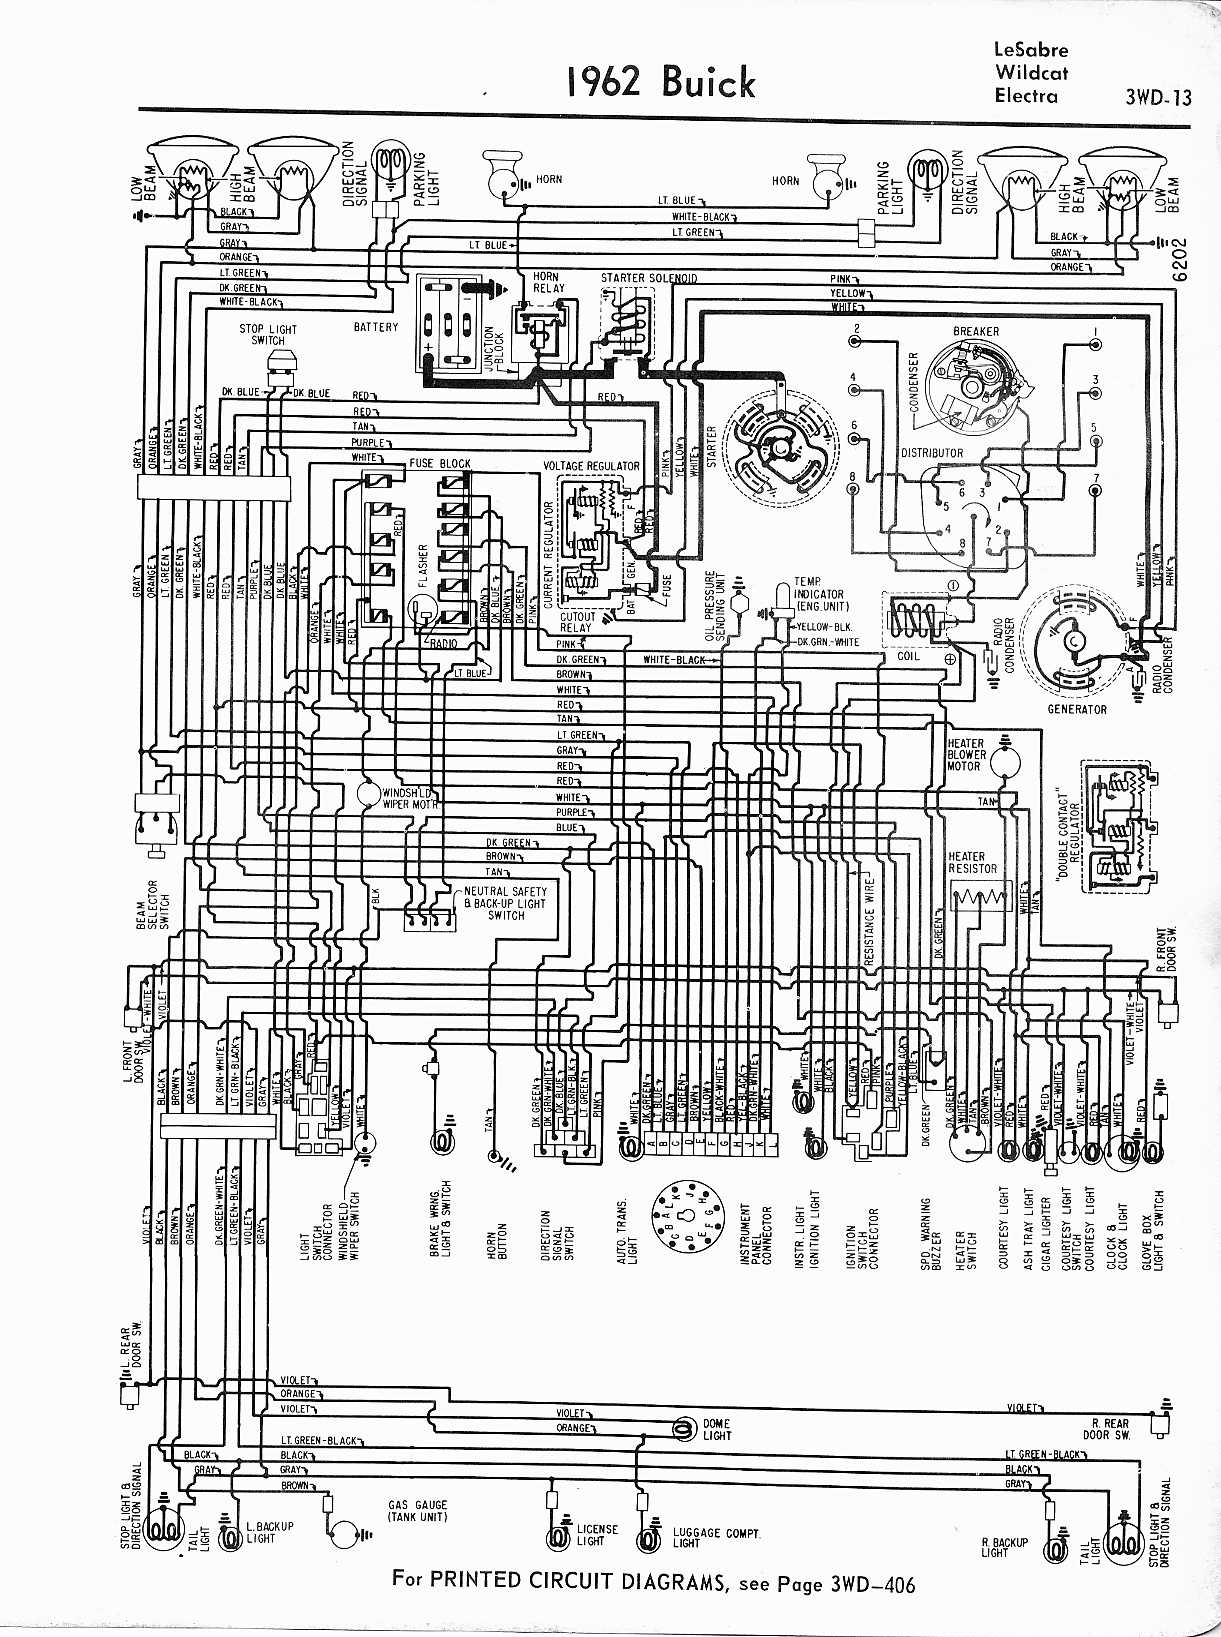 1995 Buick Lesabre Wiper Motor Wiring Diagram Reveolution Of Diagrams For Regal 1957 1965 Rh Oldcarmanualproject Com 2000 Schematic